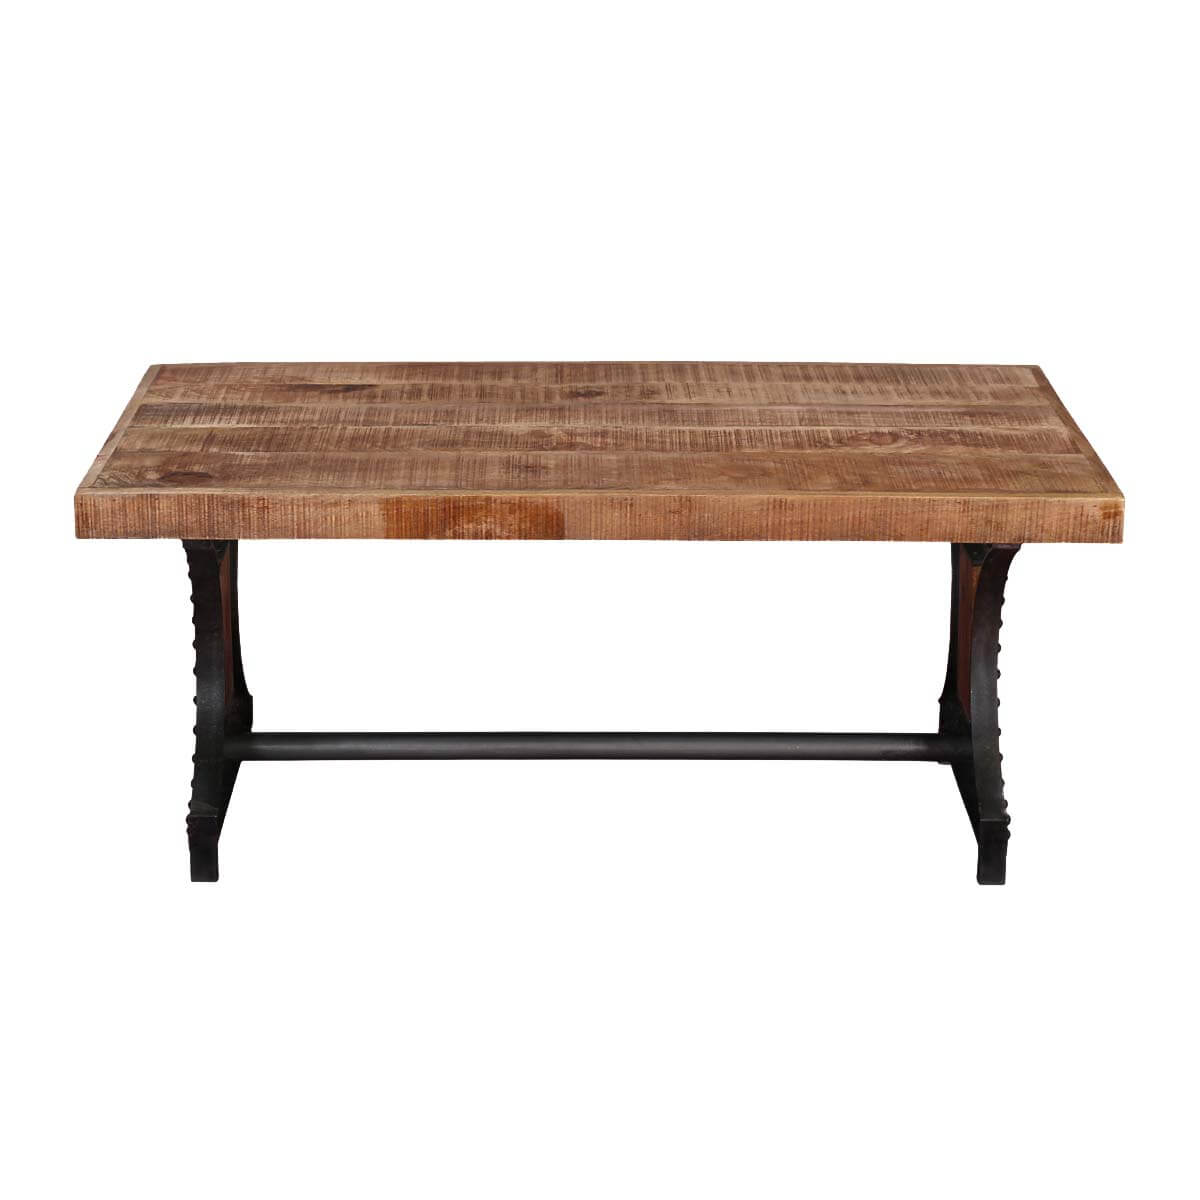 Utah Graceful Trestle Iron Base And Mango Wood Top Rustic Coffee Table